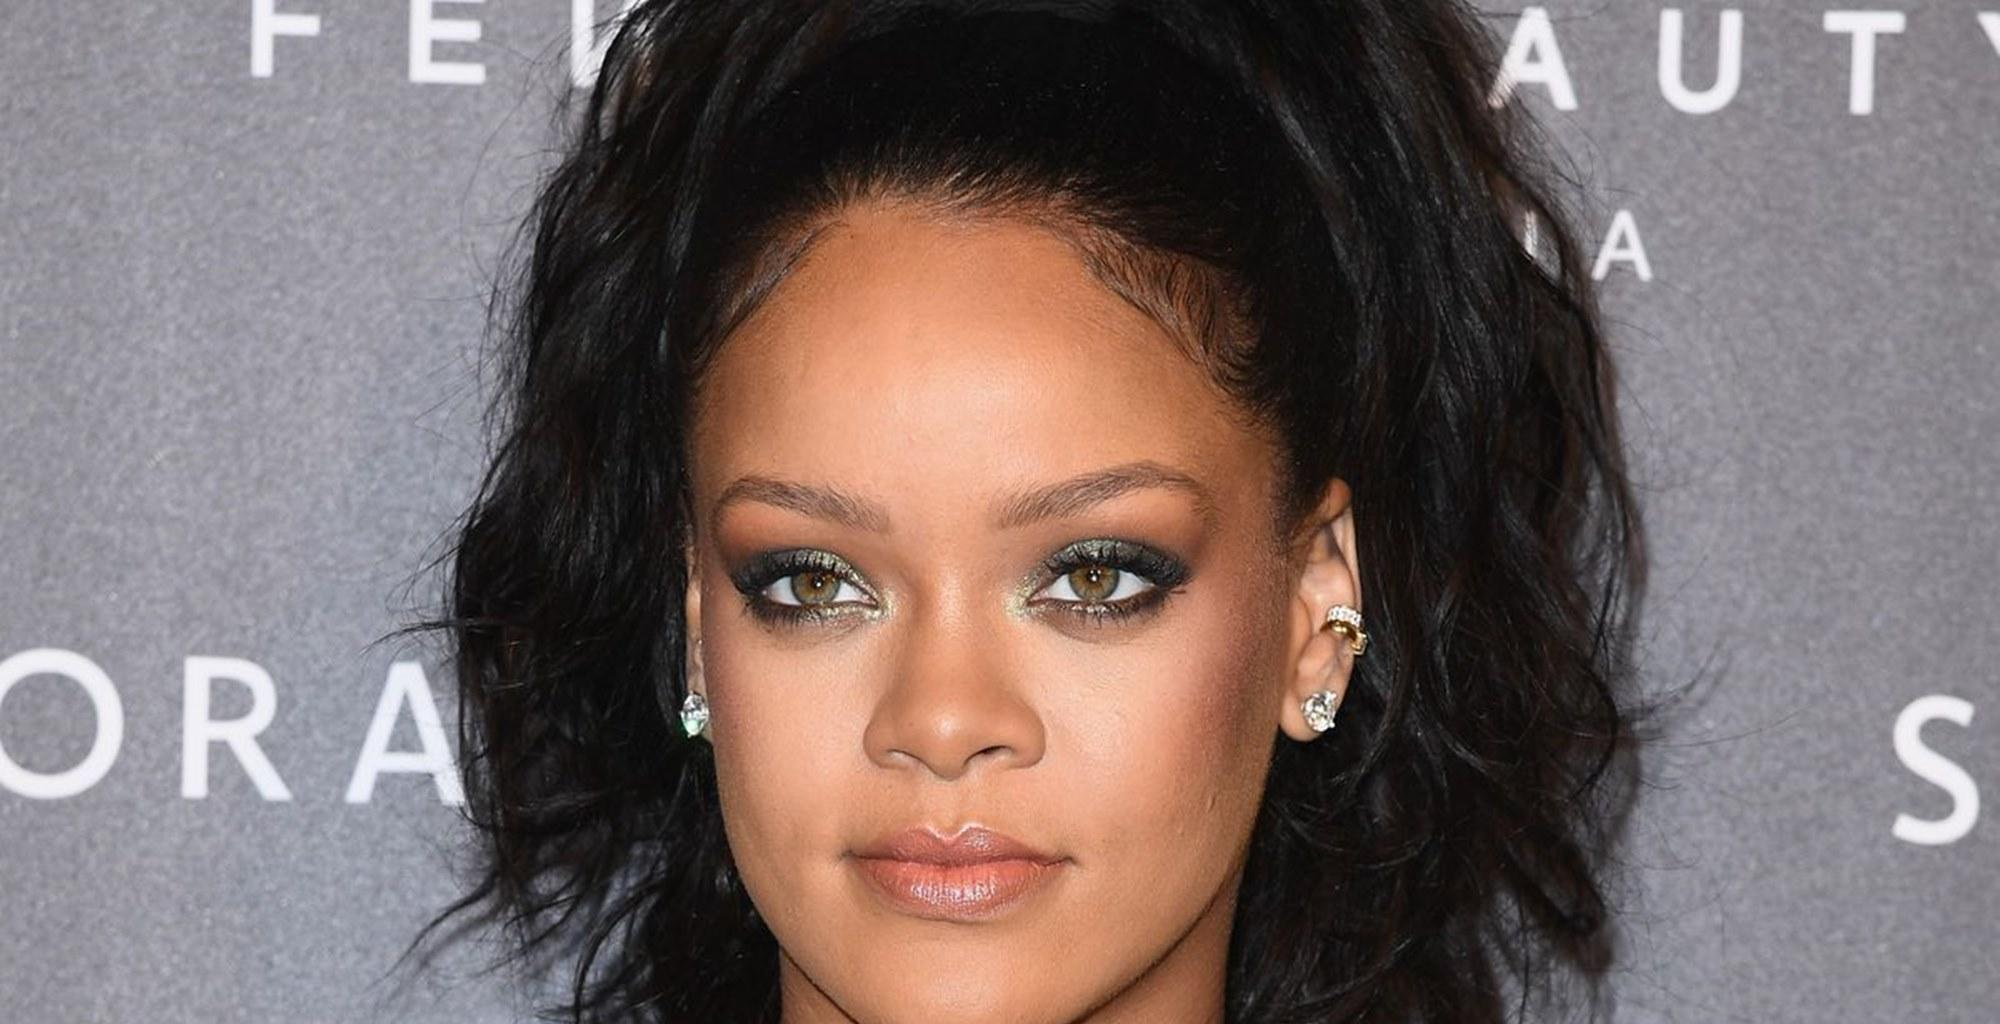 Rihanna Seems To Confirm That She Has A New Boyfriend In These Latest Cozy Photos After Split From Ex Hassan Jameel